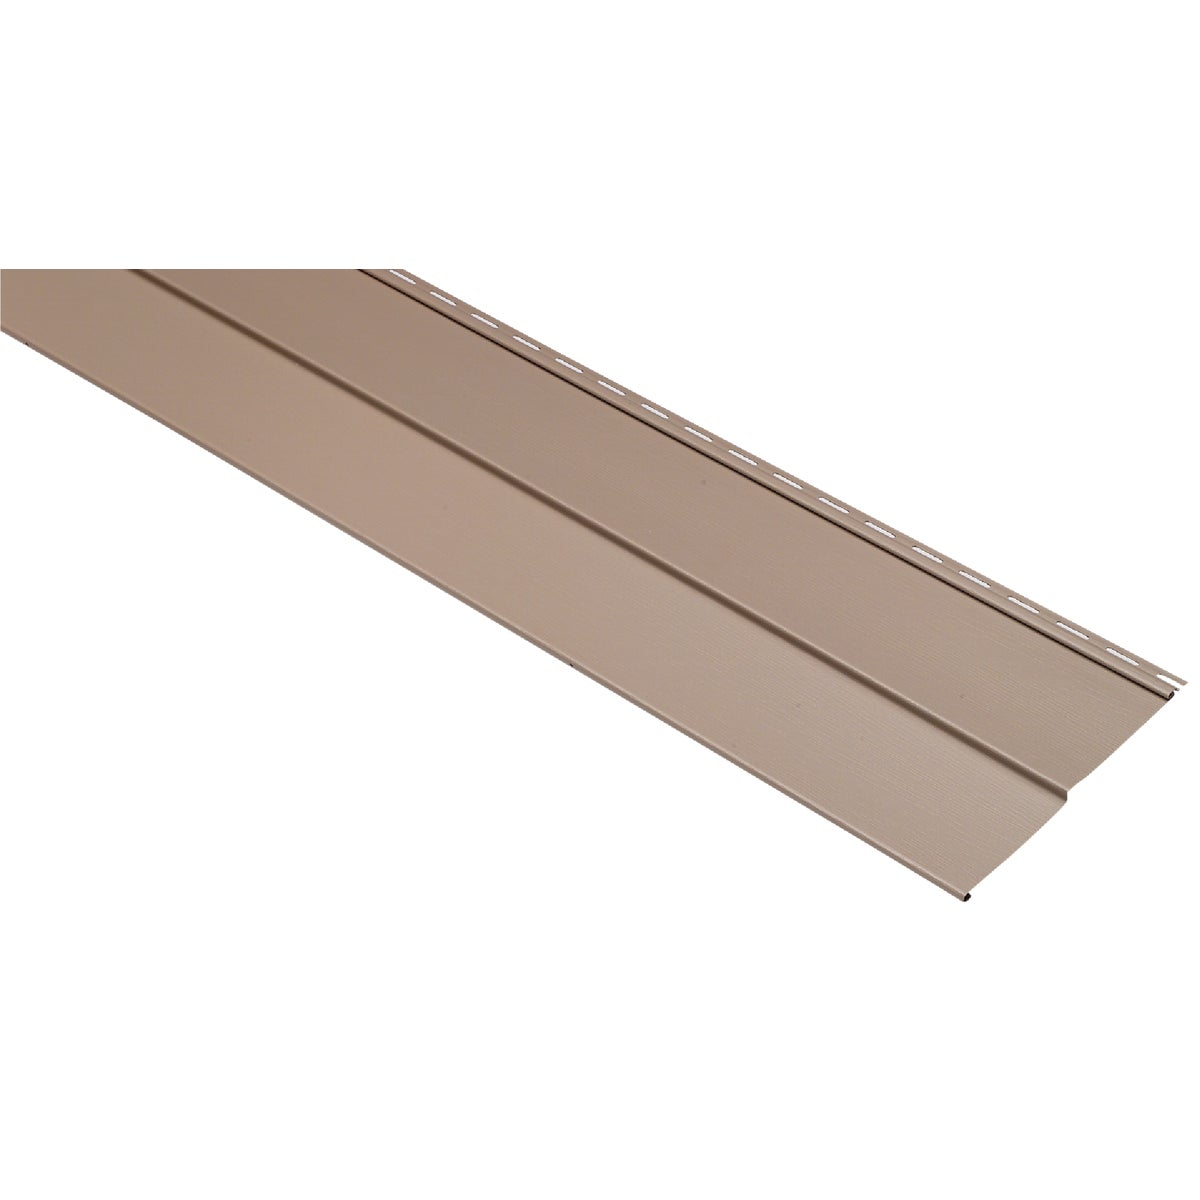 D5 CLAY VP VINYL SIDING - 531654 by Bluelinx